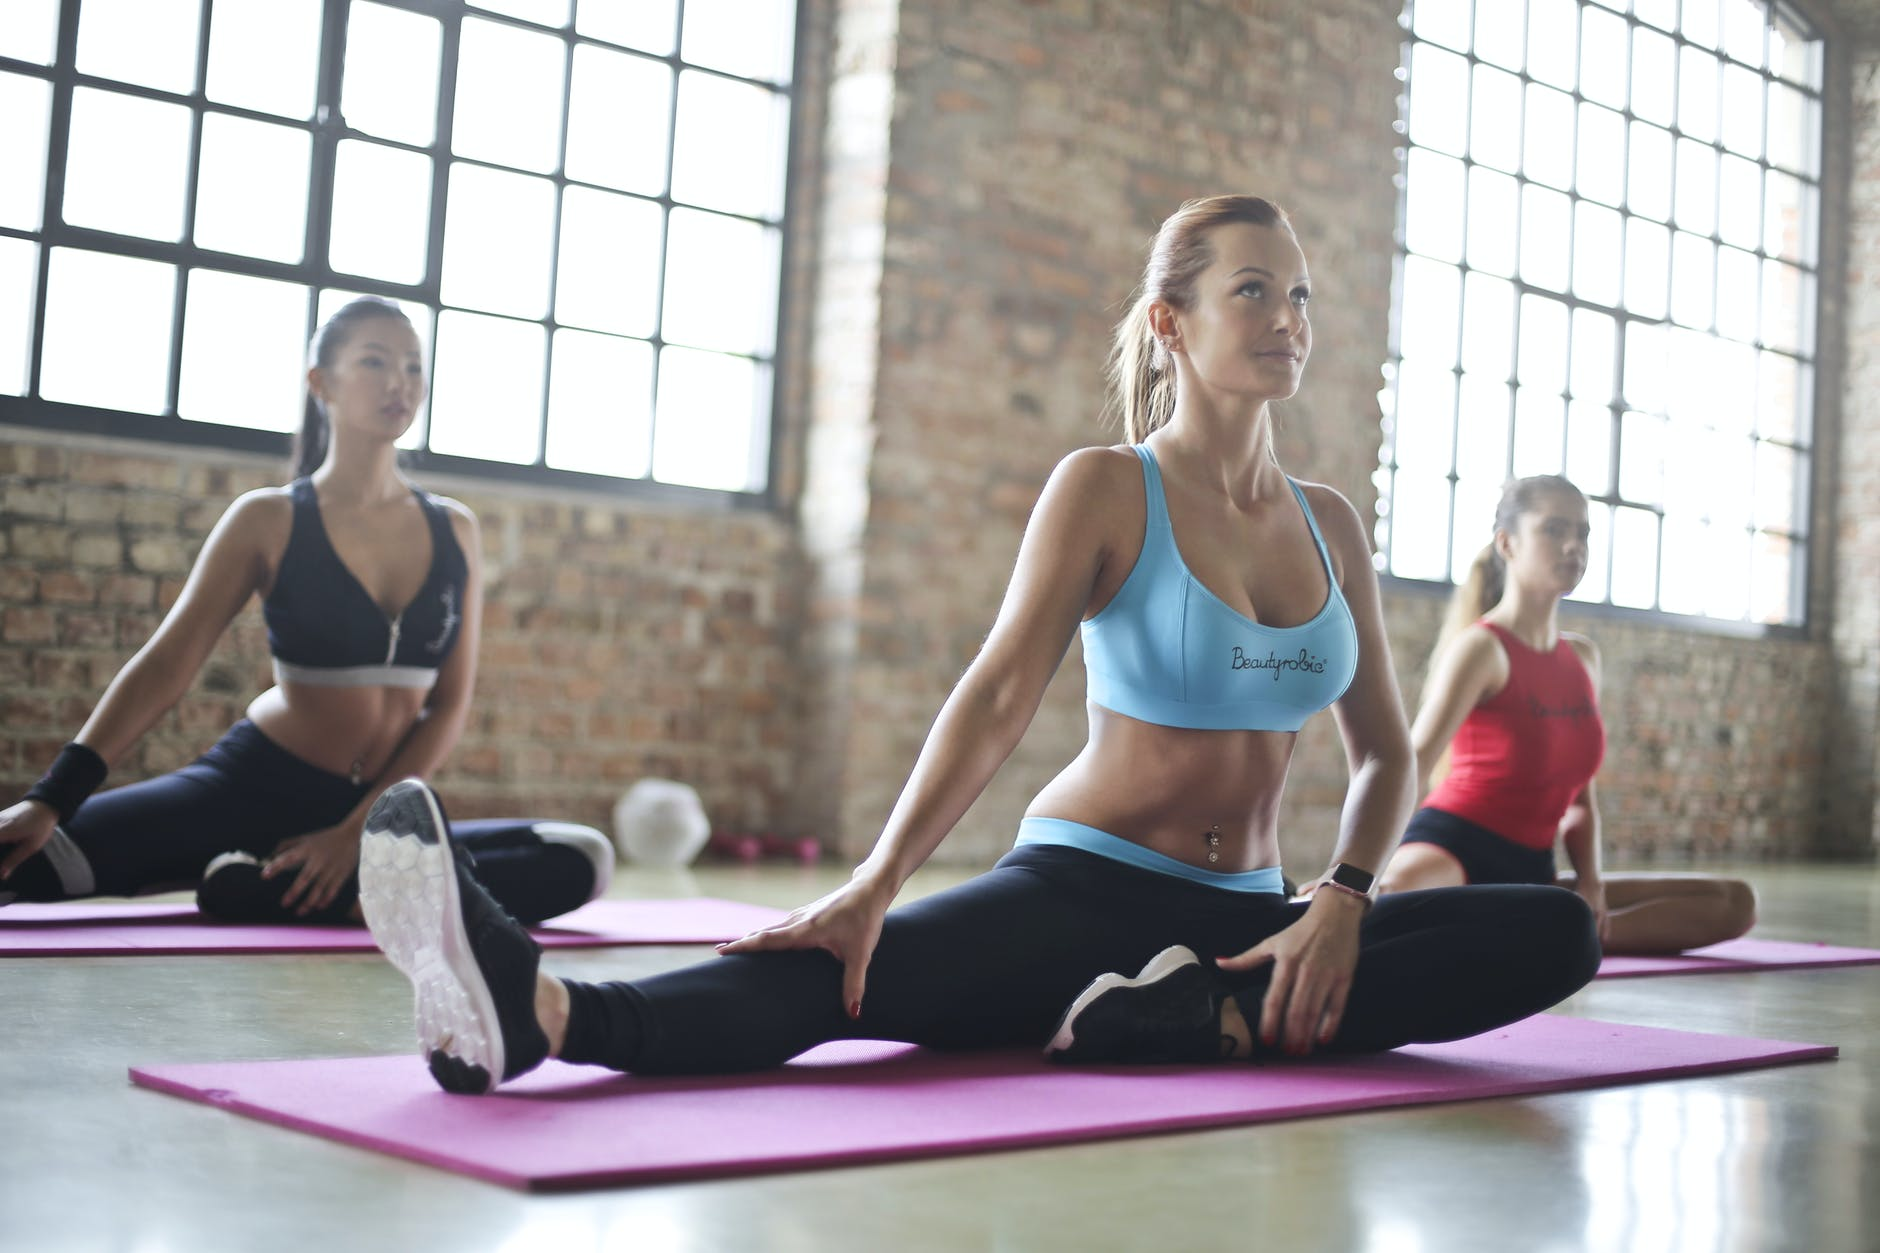 6 Steps to Take Before Your Yoga Workout